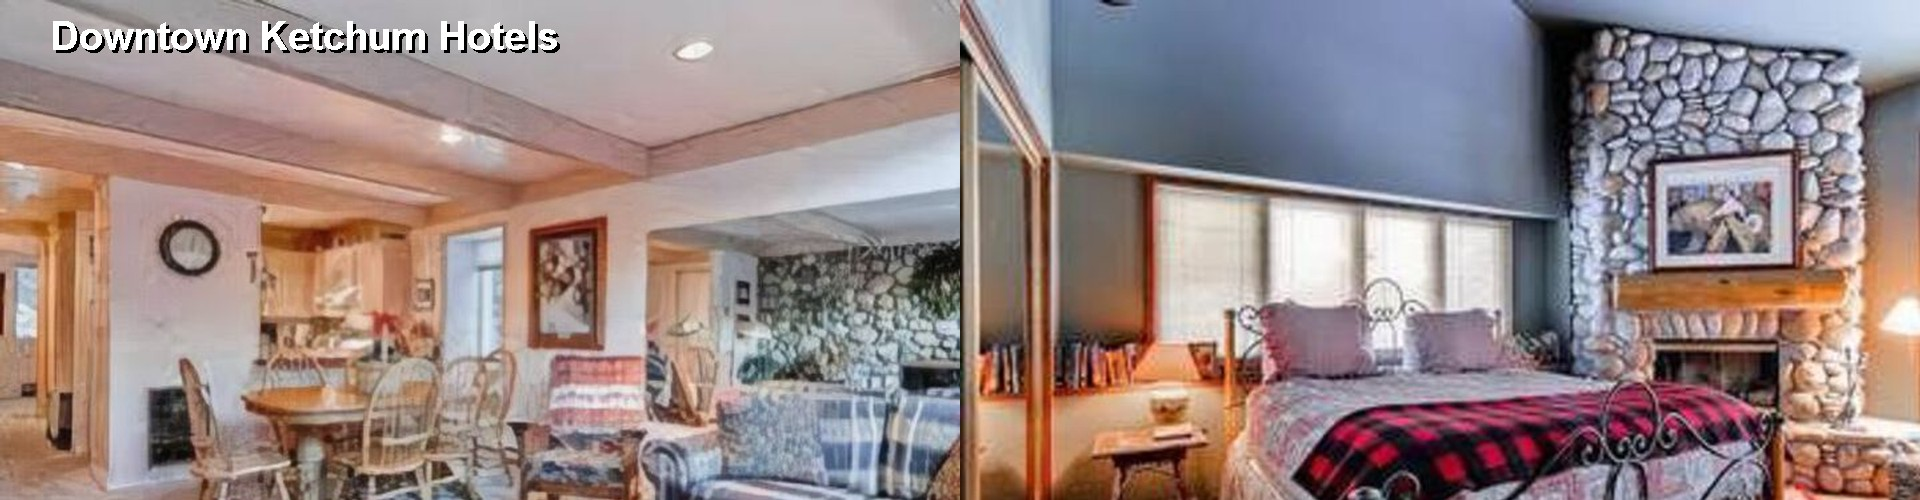 5 Best Hotels near Downtown Ketchum